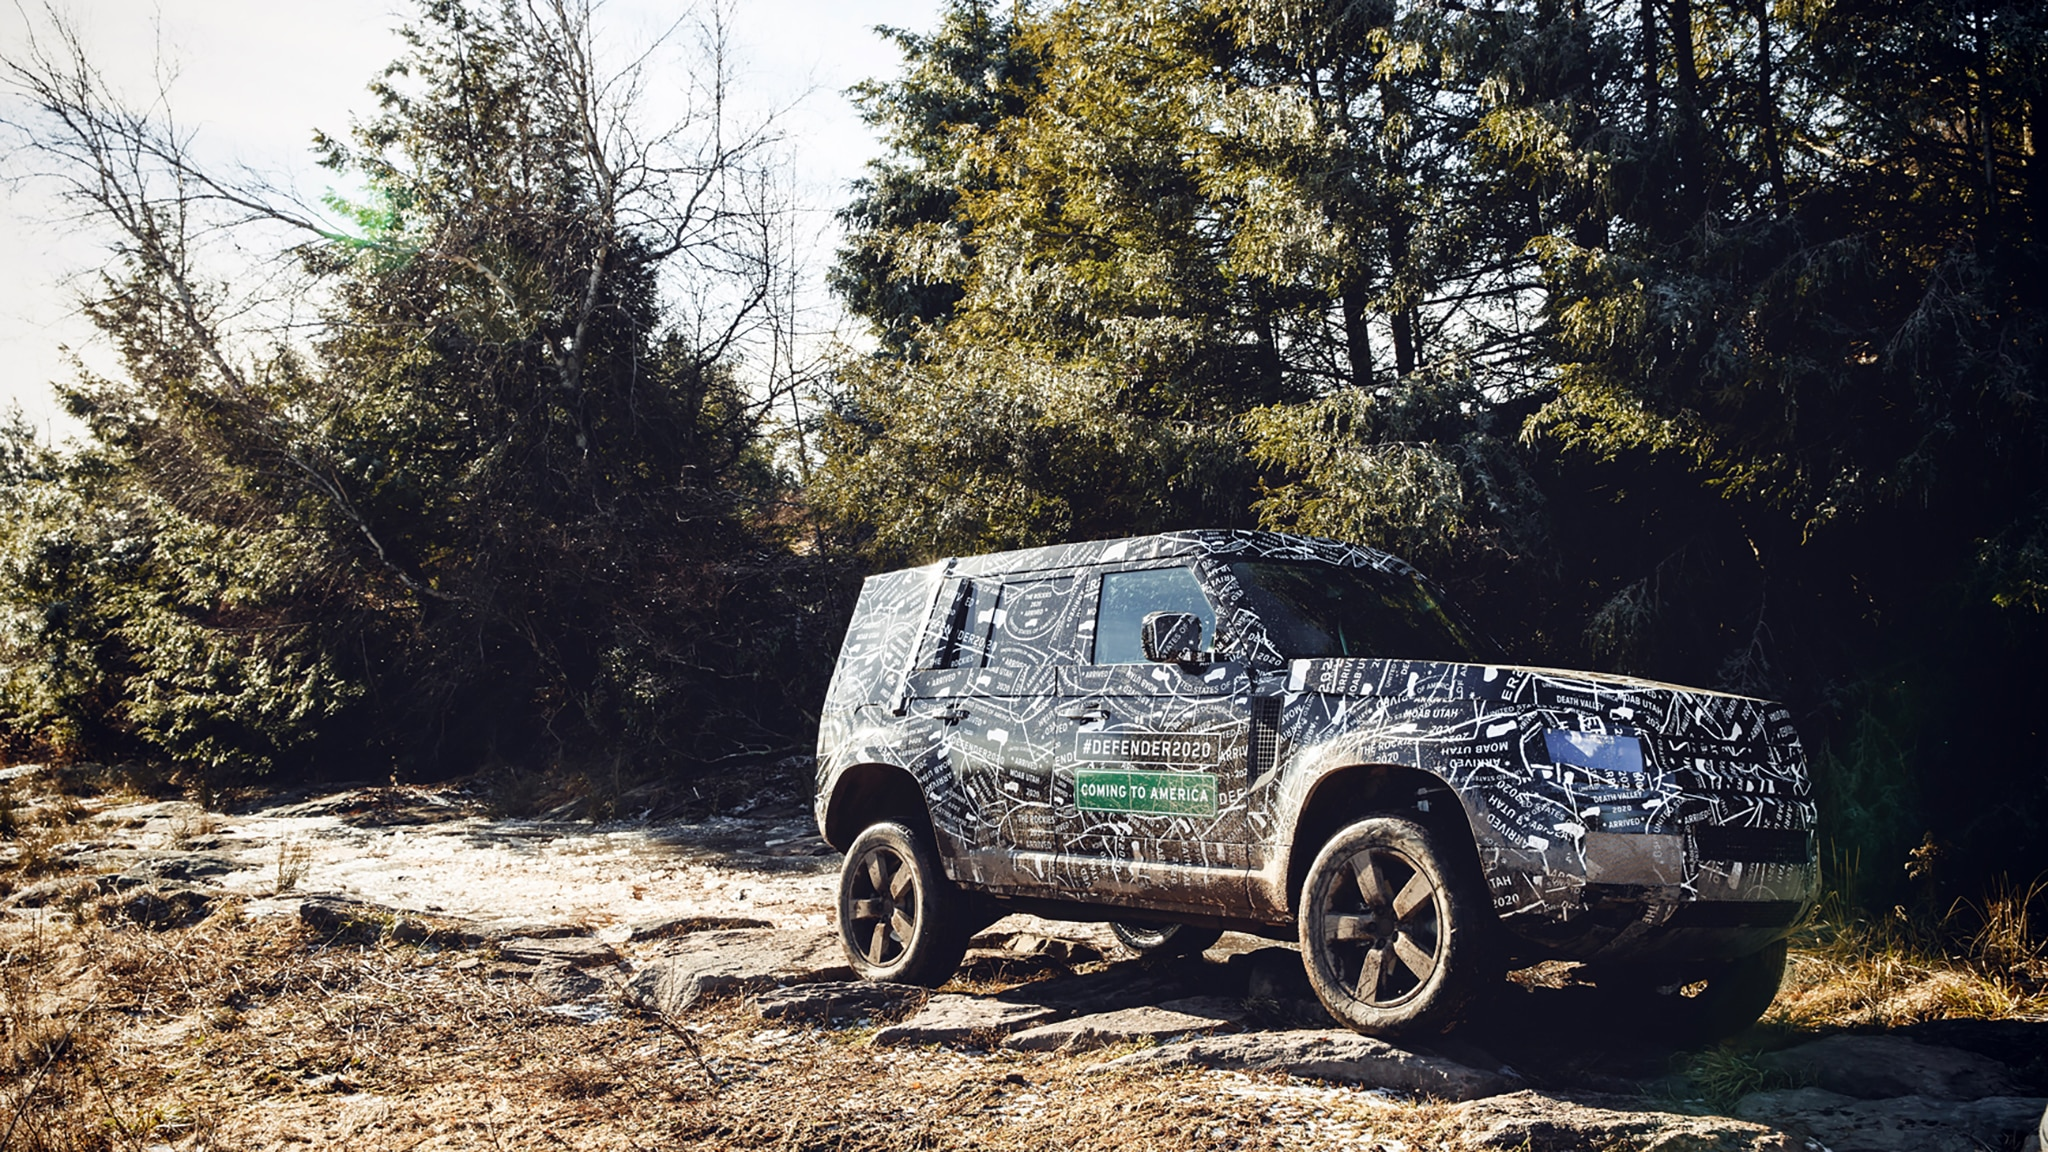 2020 Land Rover Defender: Here's Another Undisguised Look